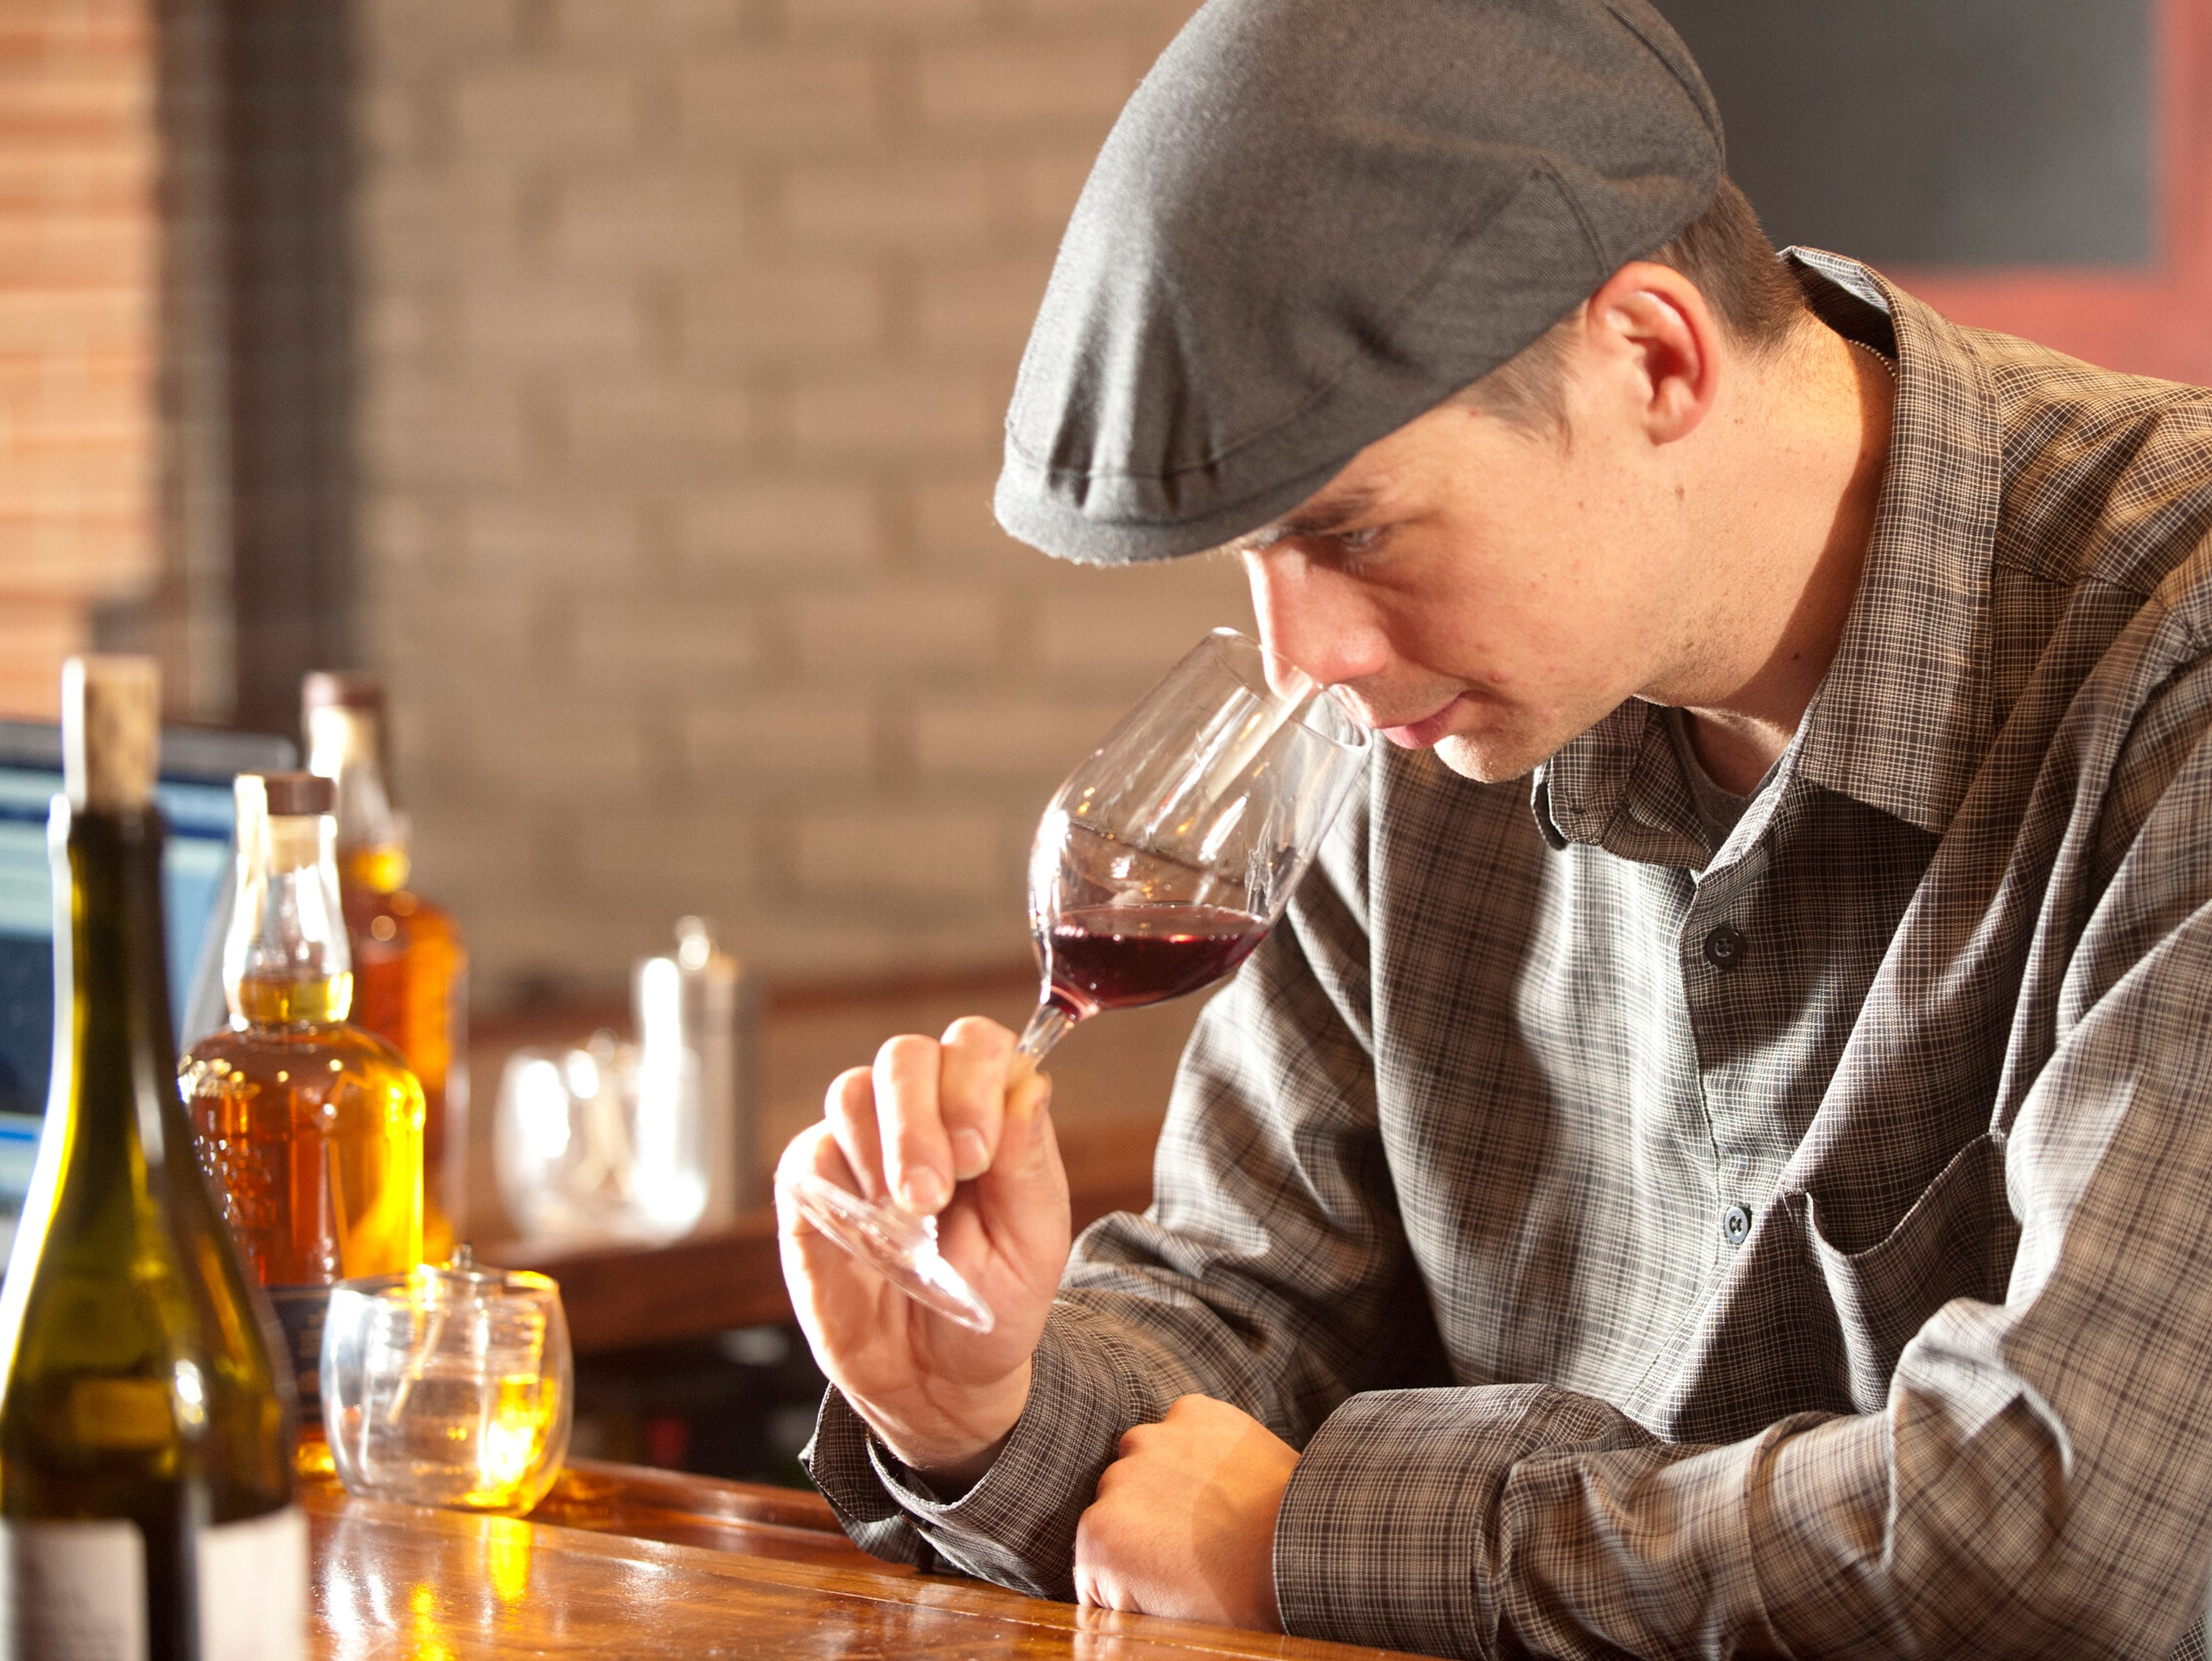 Isaac Fox, owner of the La Chasse Restaurant on Bardstown Road, test out a new wine.November 15, 2018